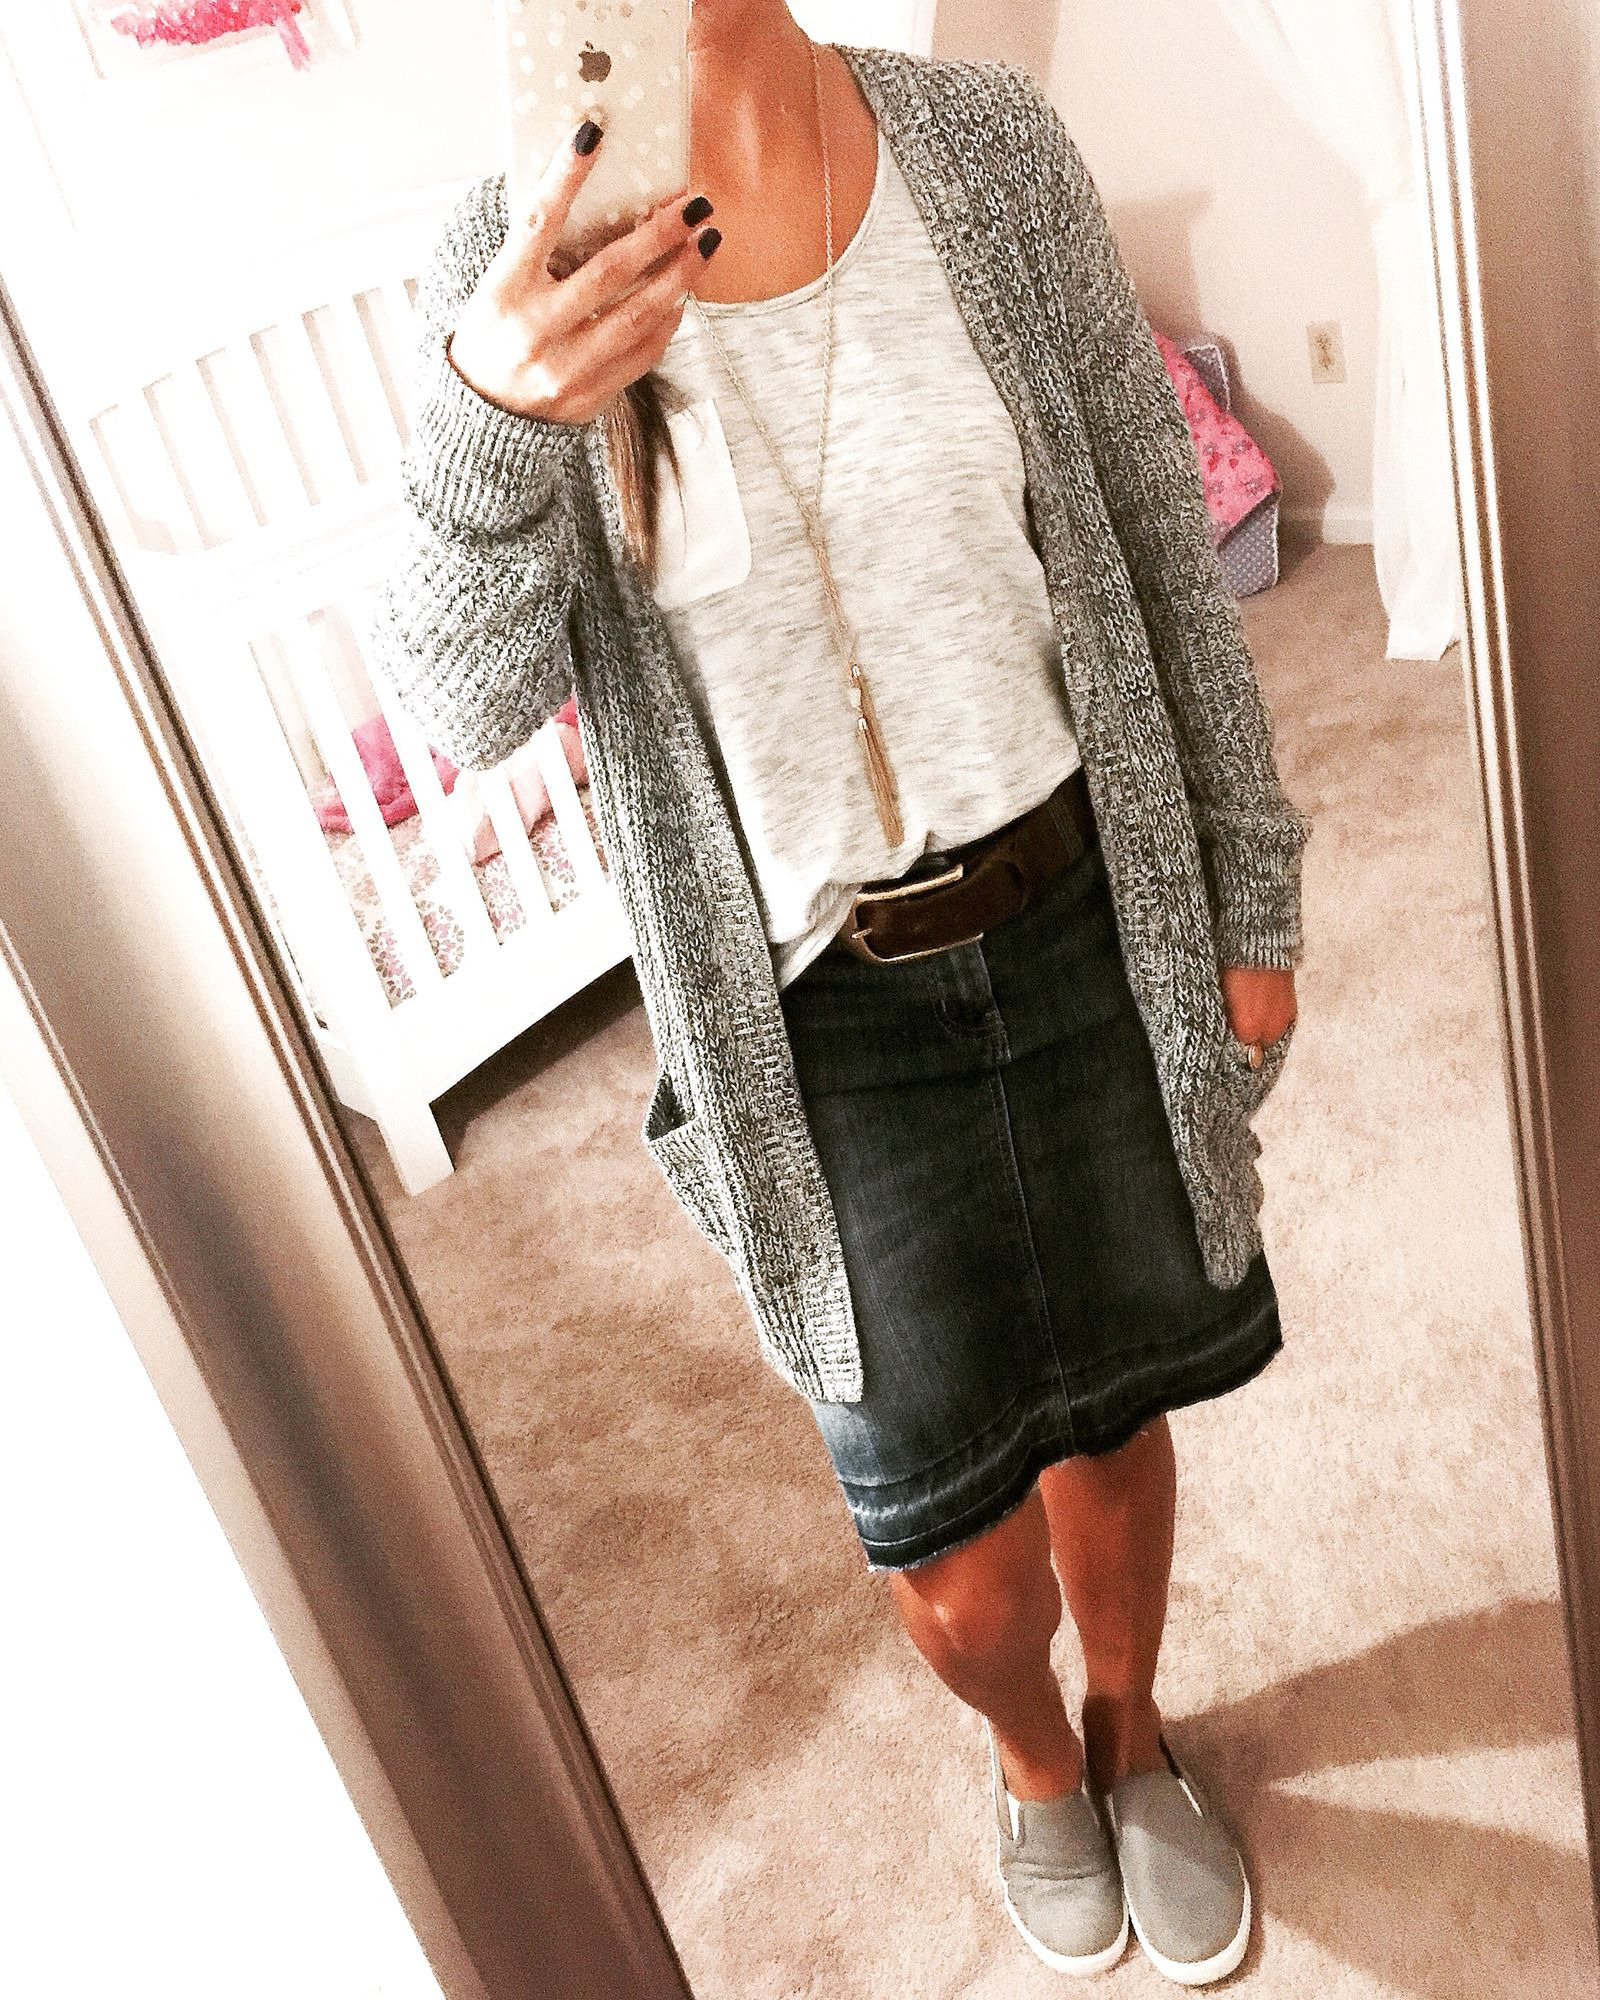 Grey and white Lou & Grey t-shirt, black and white cardigan, jean skirt and slip-on sneakers (Ann Taylor Loft, Gap Factory)